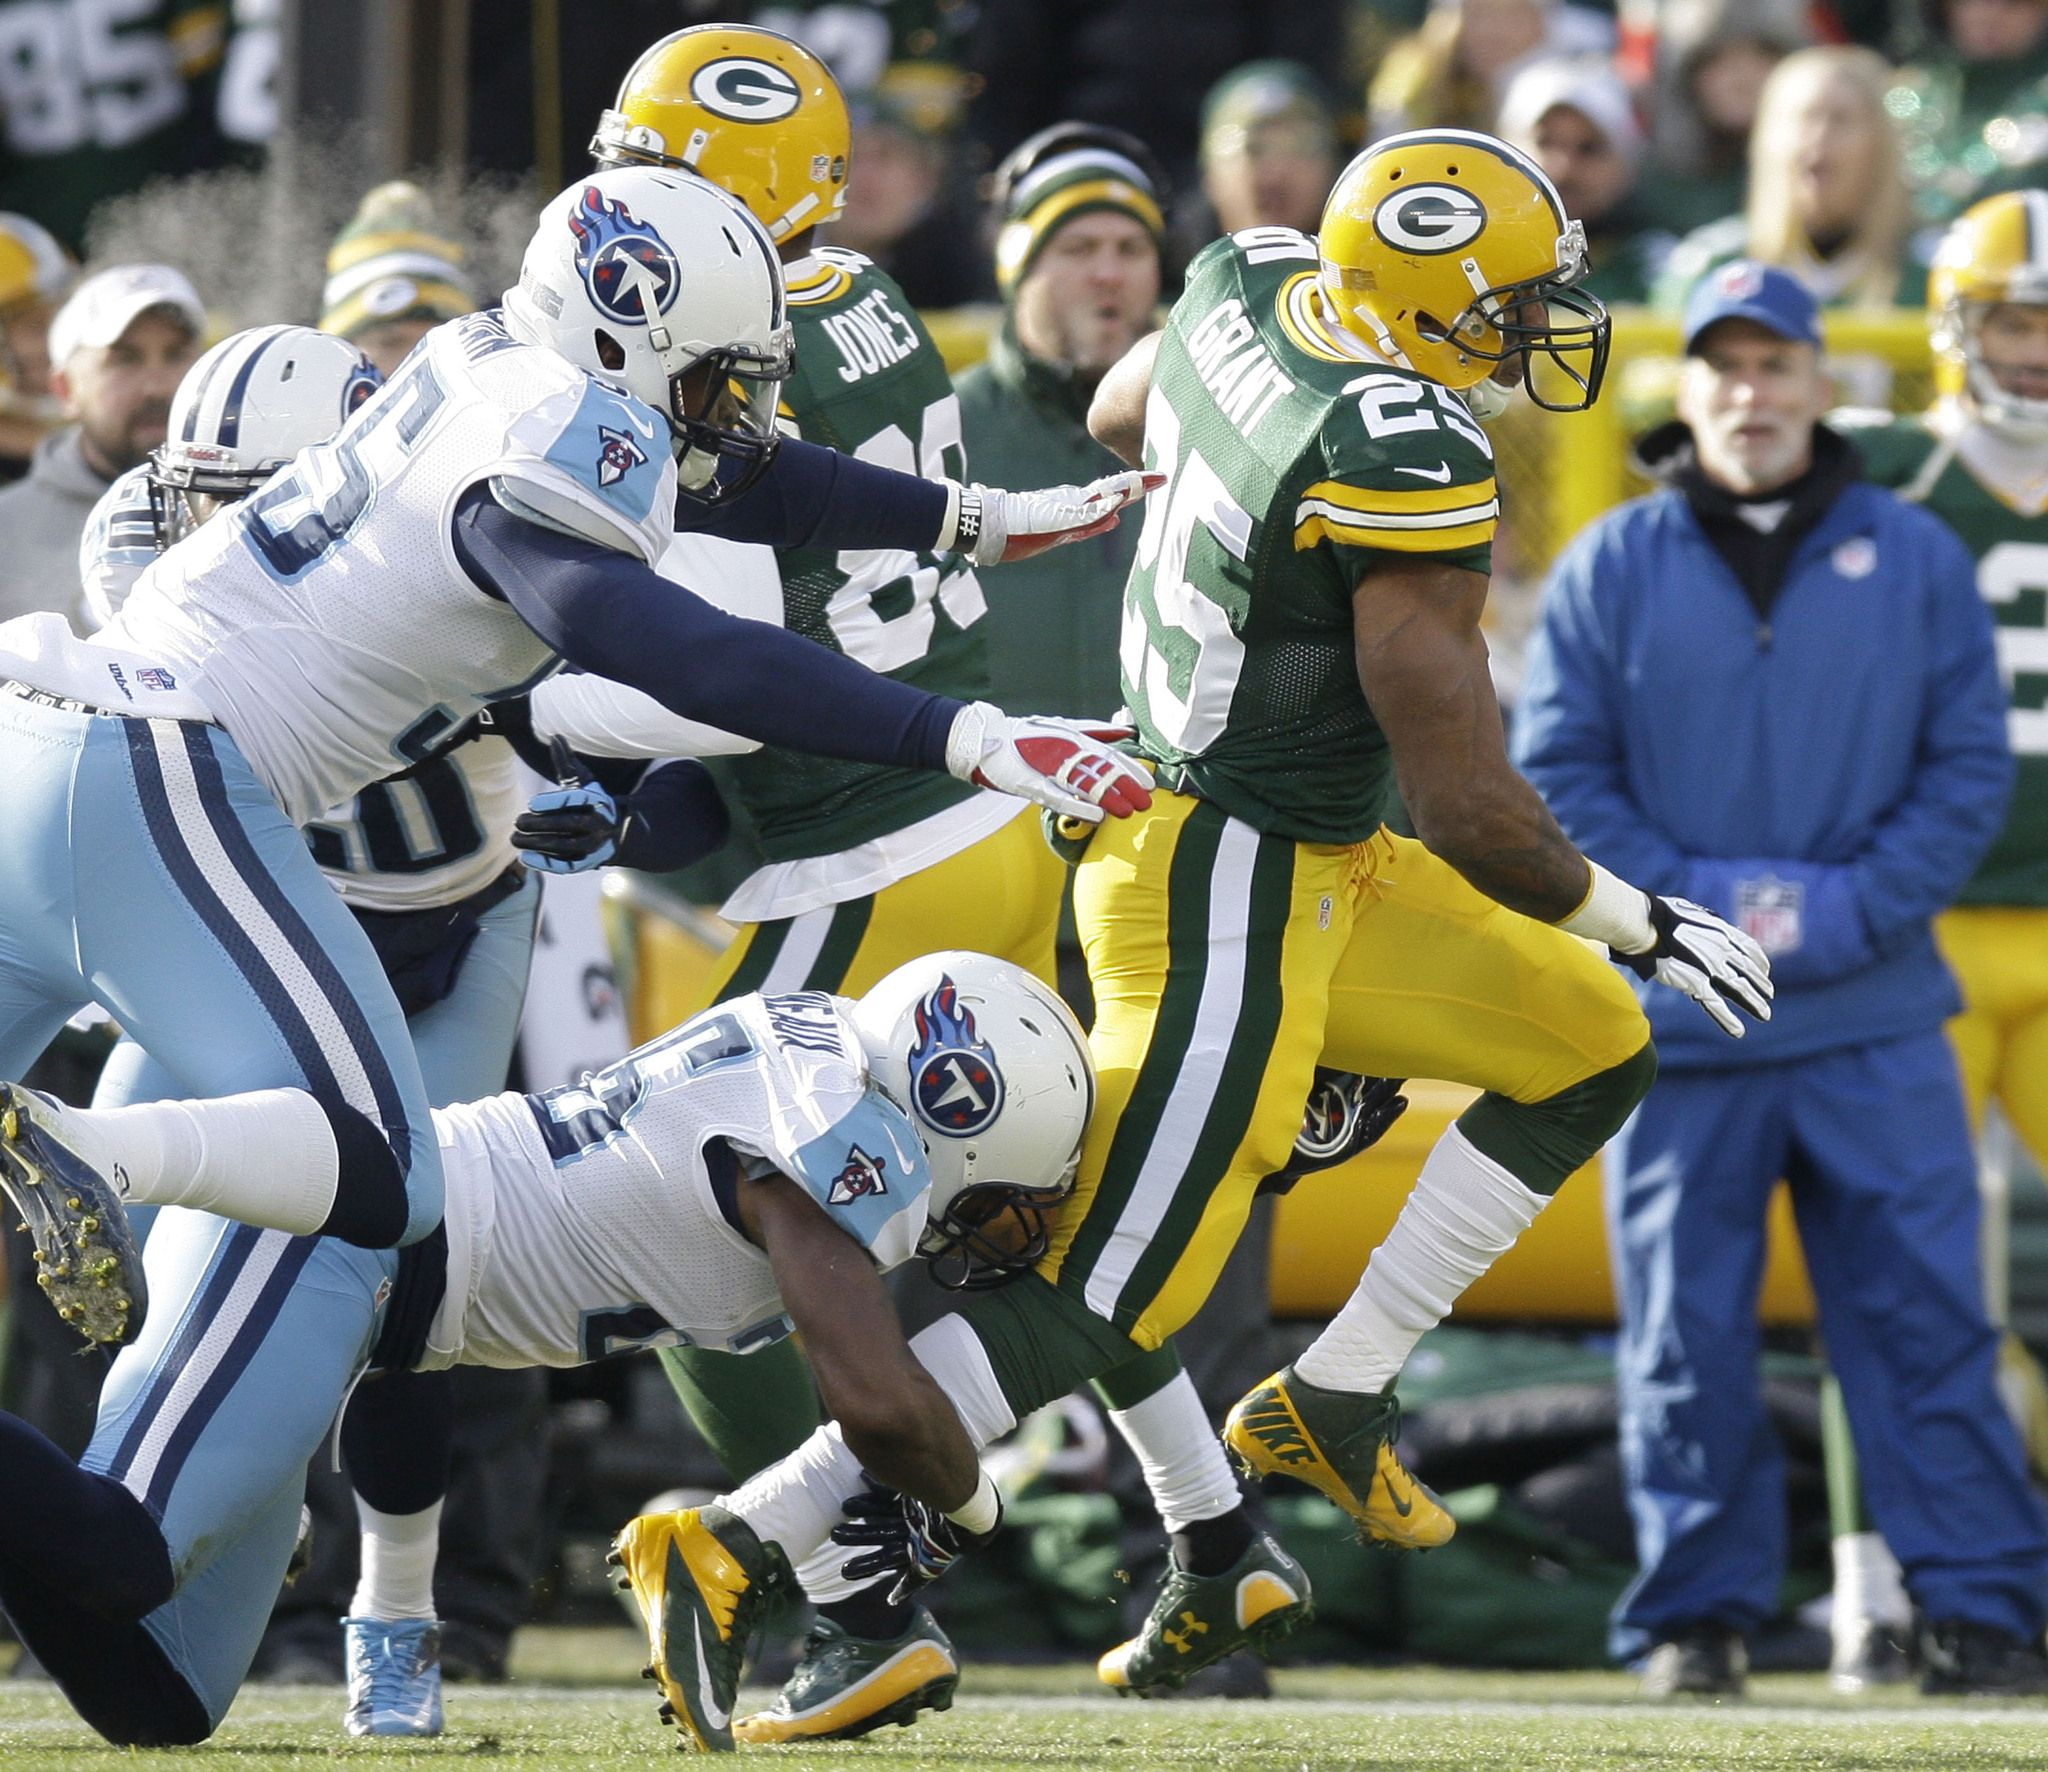 Photos Packers 55, Titans 7 Green bay packers, Go